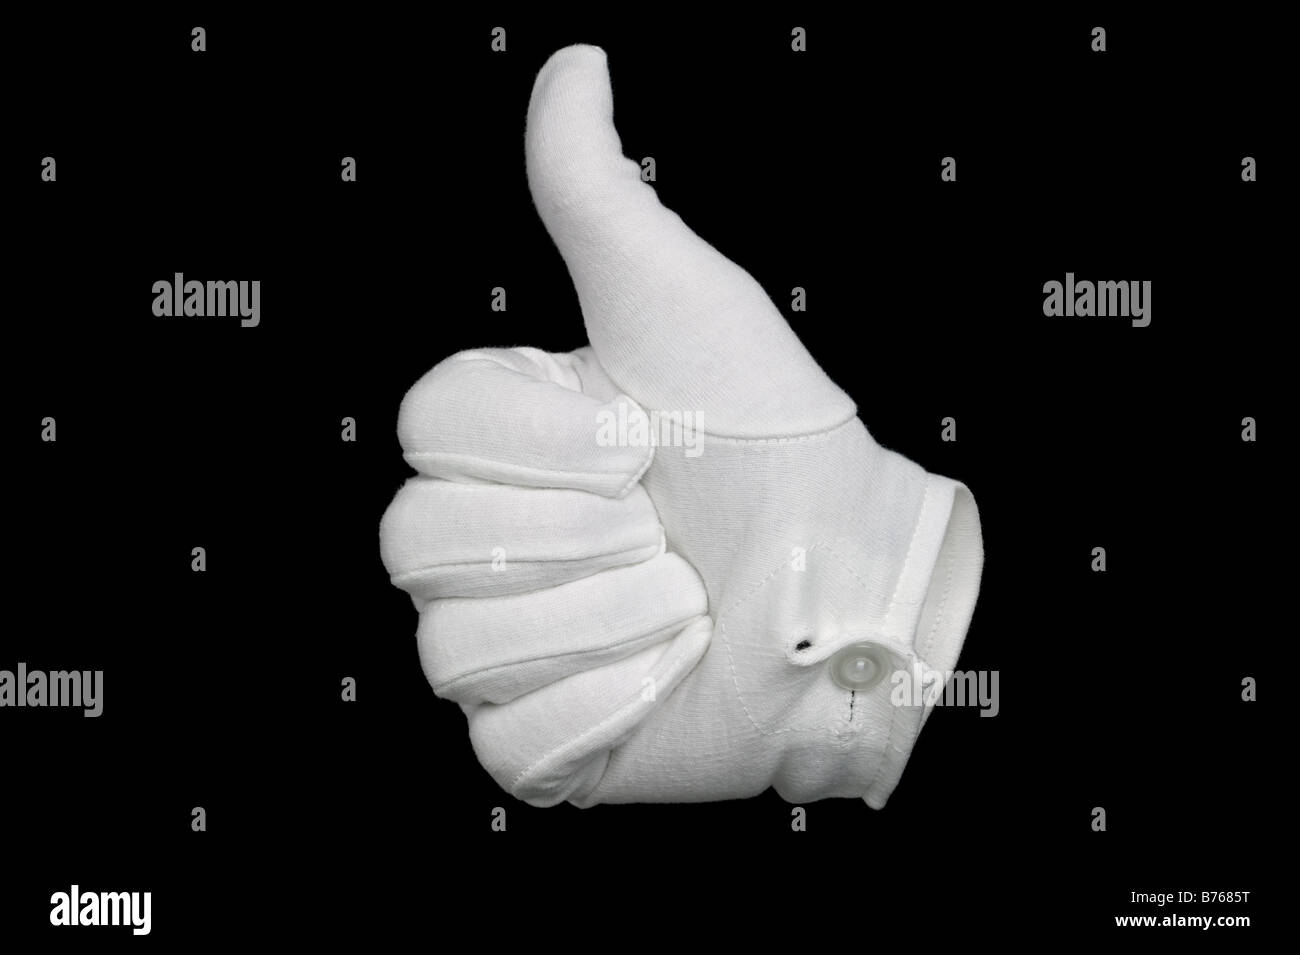 Hand in a white cotton glove gesturing a thumbs up sign isolated on a black background Invisible man effect on glove - Stock Image